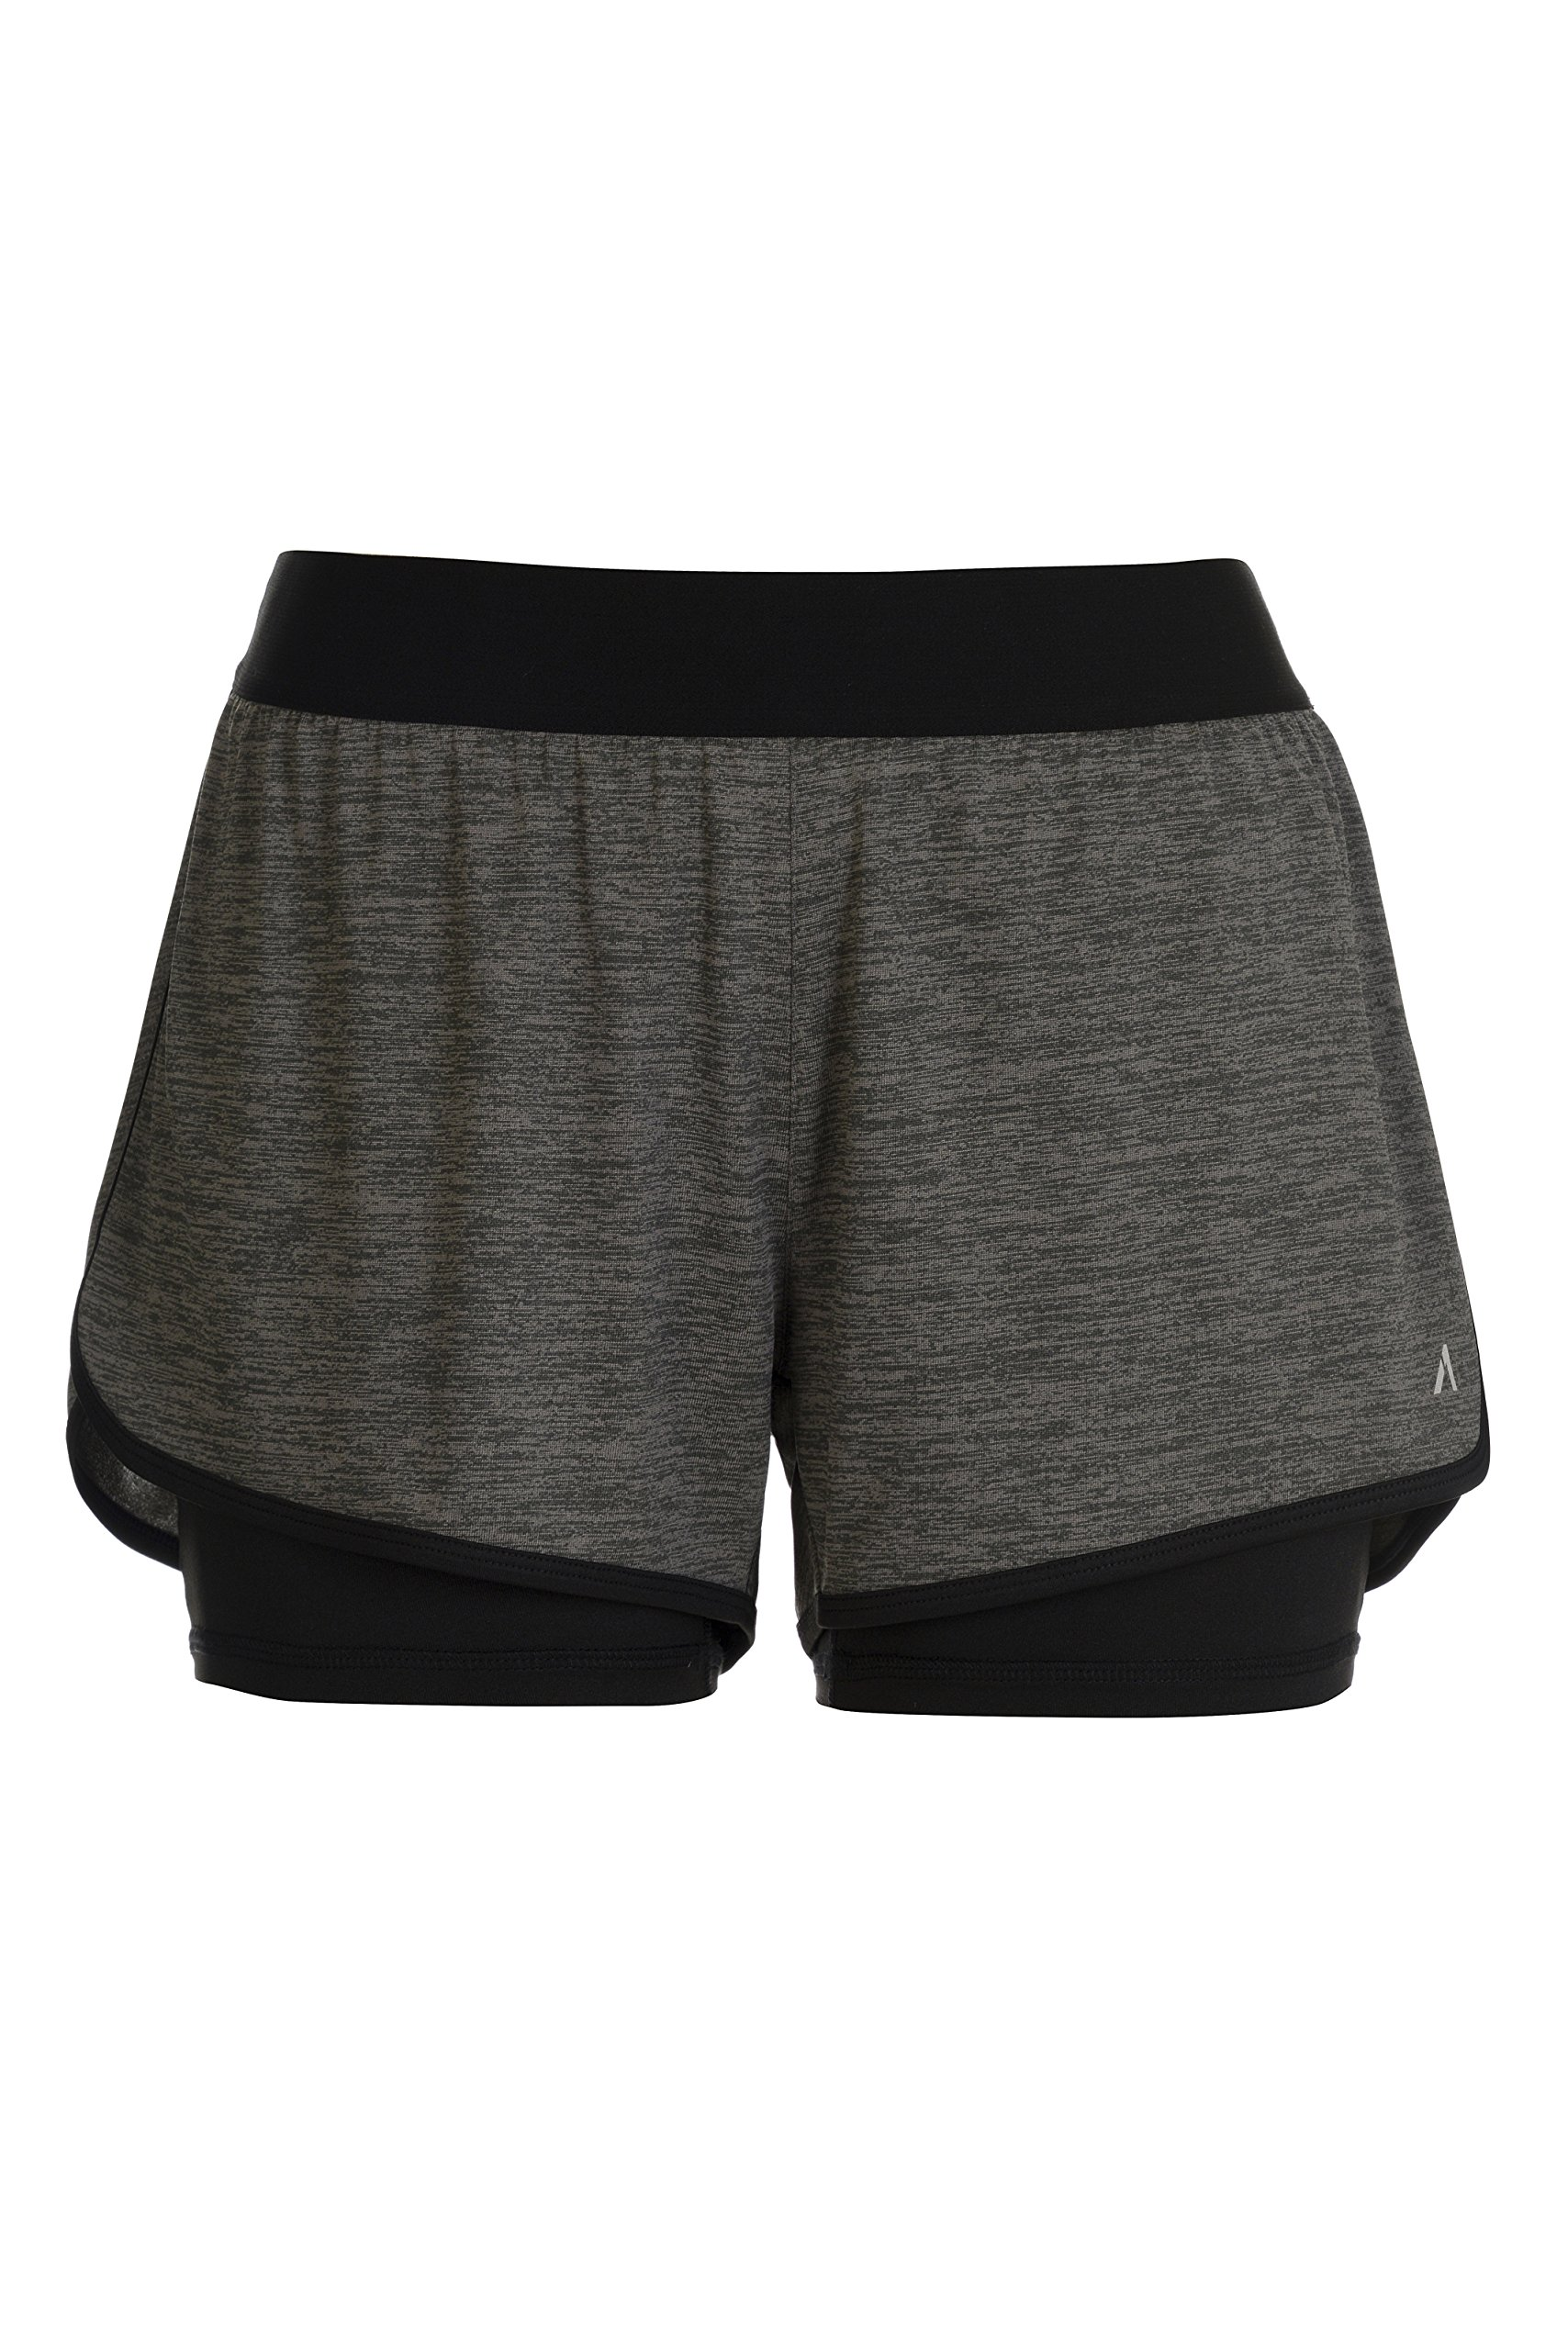 Alive Ladies Two in One Knit Yoga Running Short with Compression Short (Large, Charcoal Heather/Rich Black)